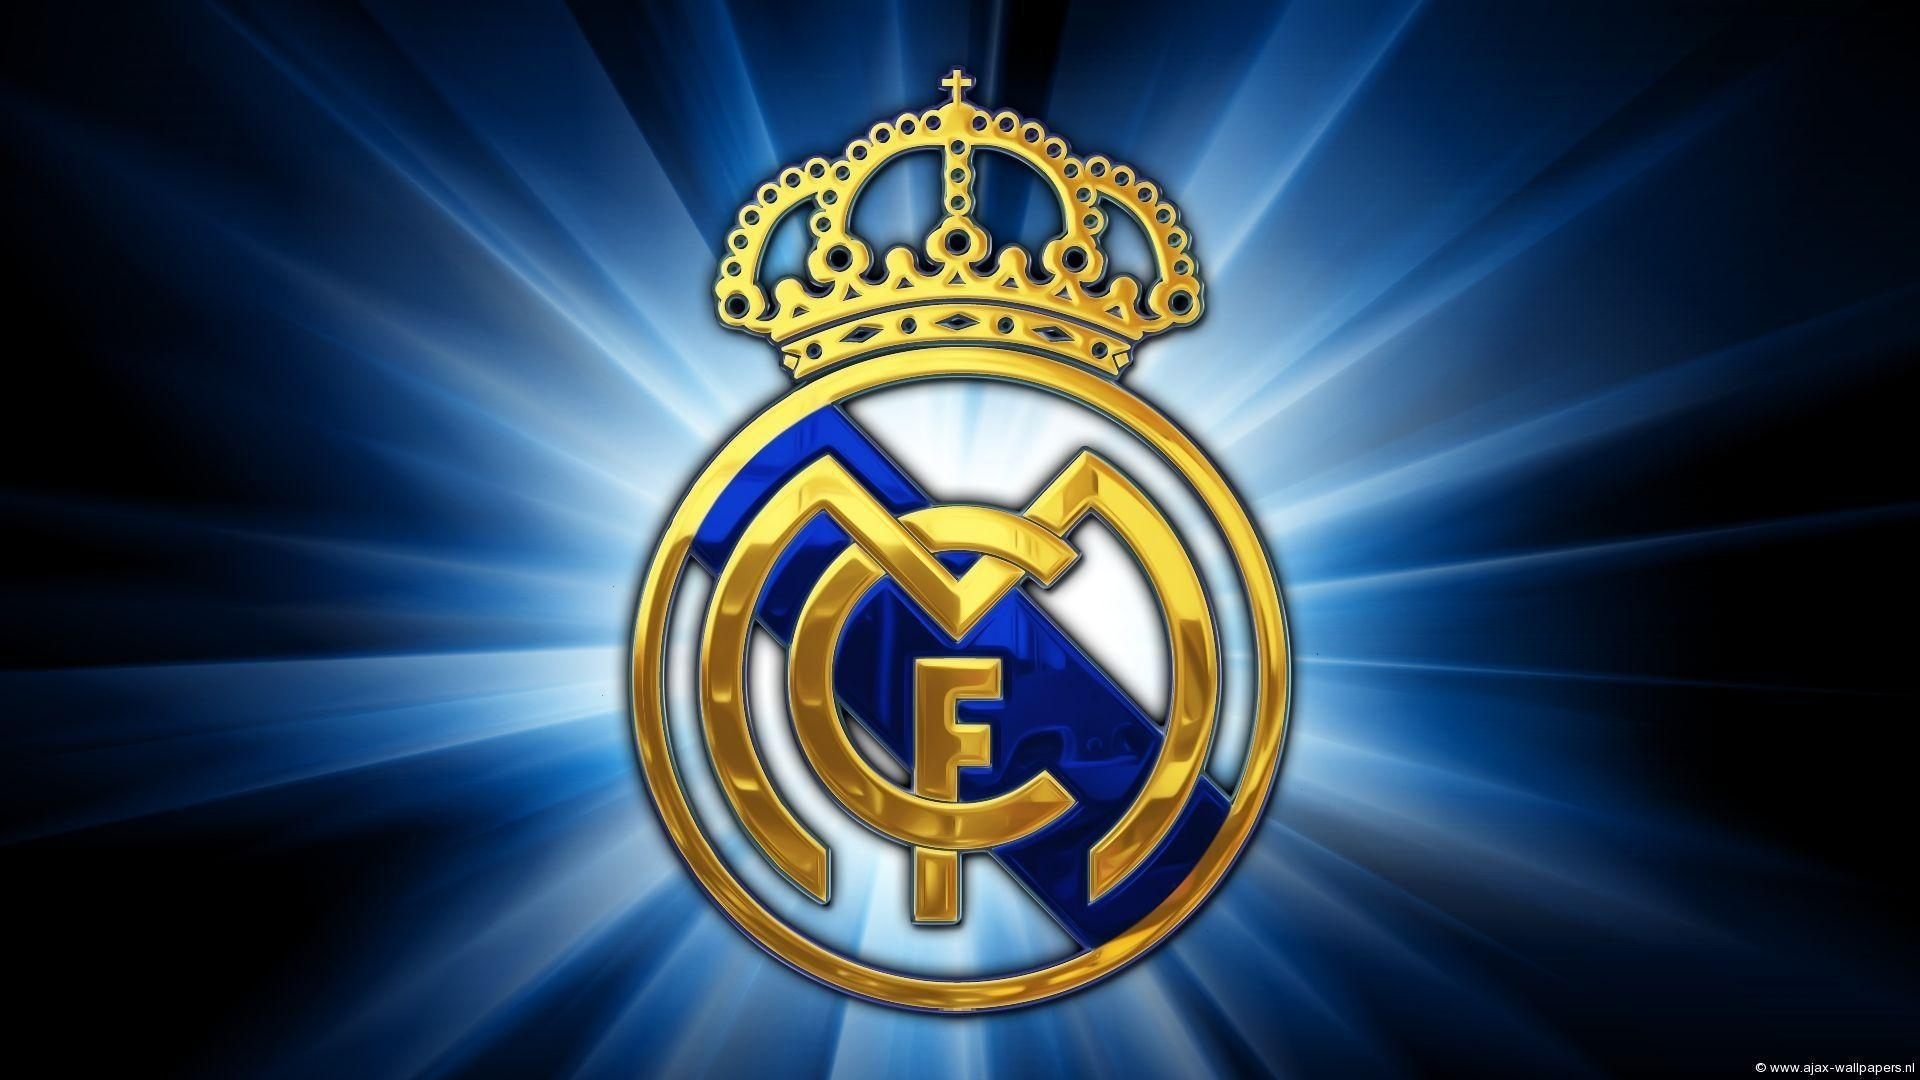 real madrid logo wallpapers hd 2016 - wallpaper cave